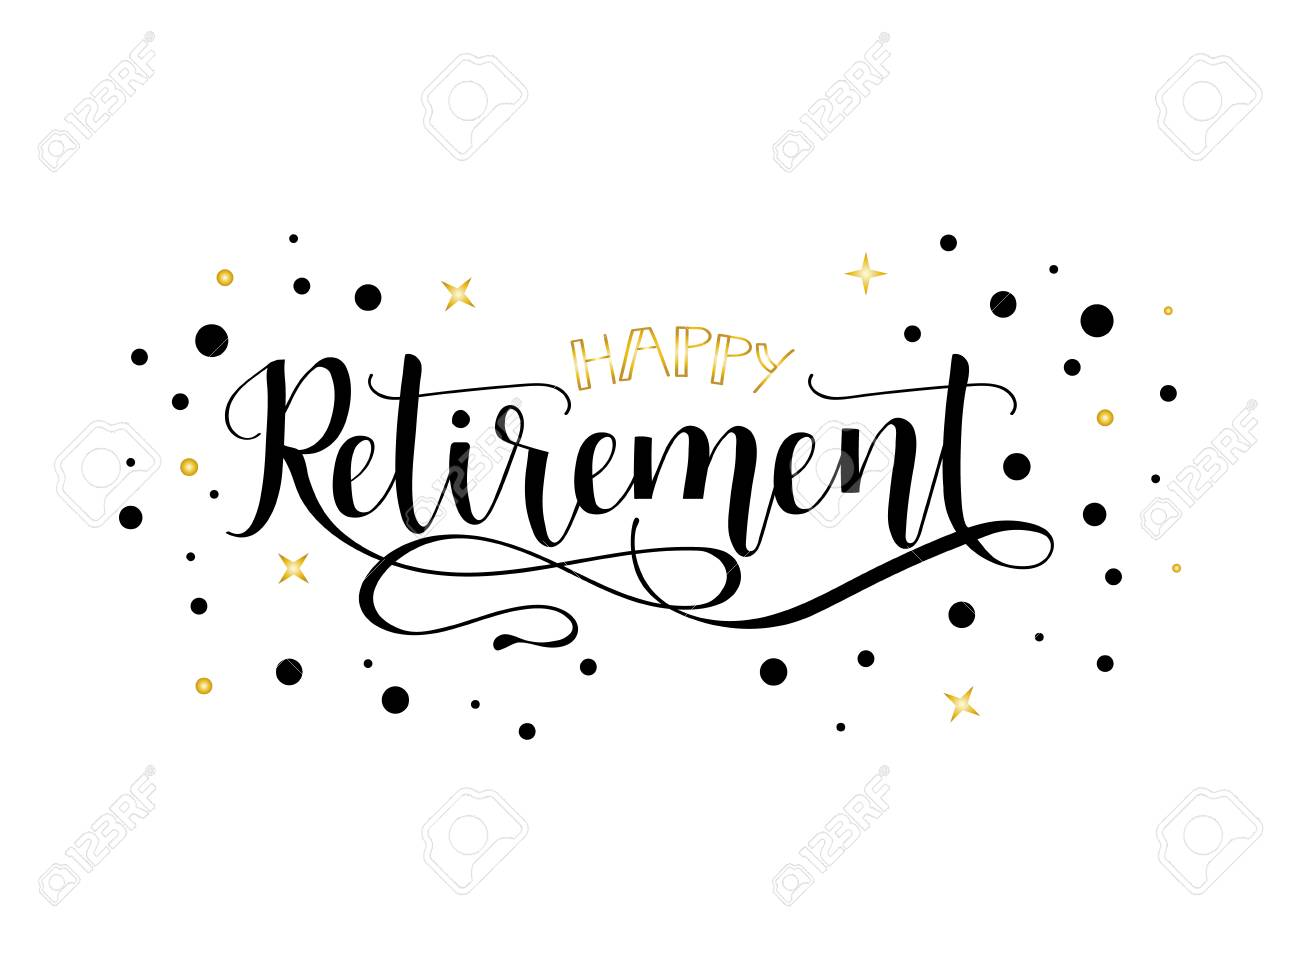 Happy retirement lettering. Hand drawn vector illustration, element for flyers, banner, postcards and posters, modern calligraphy. - 96243458